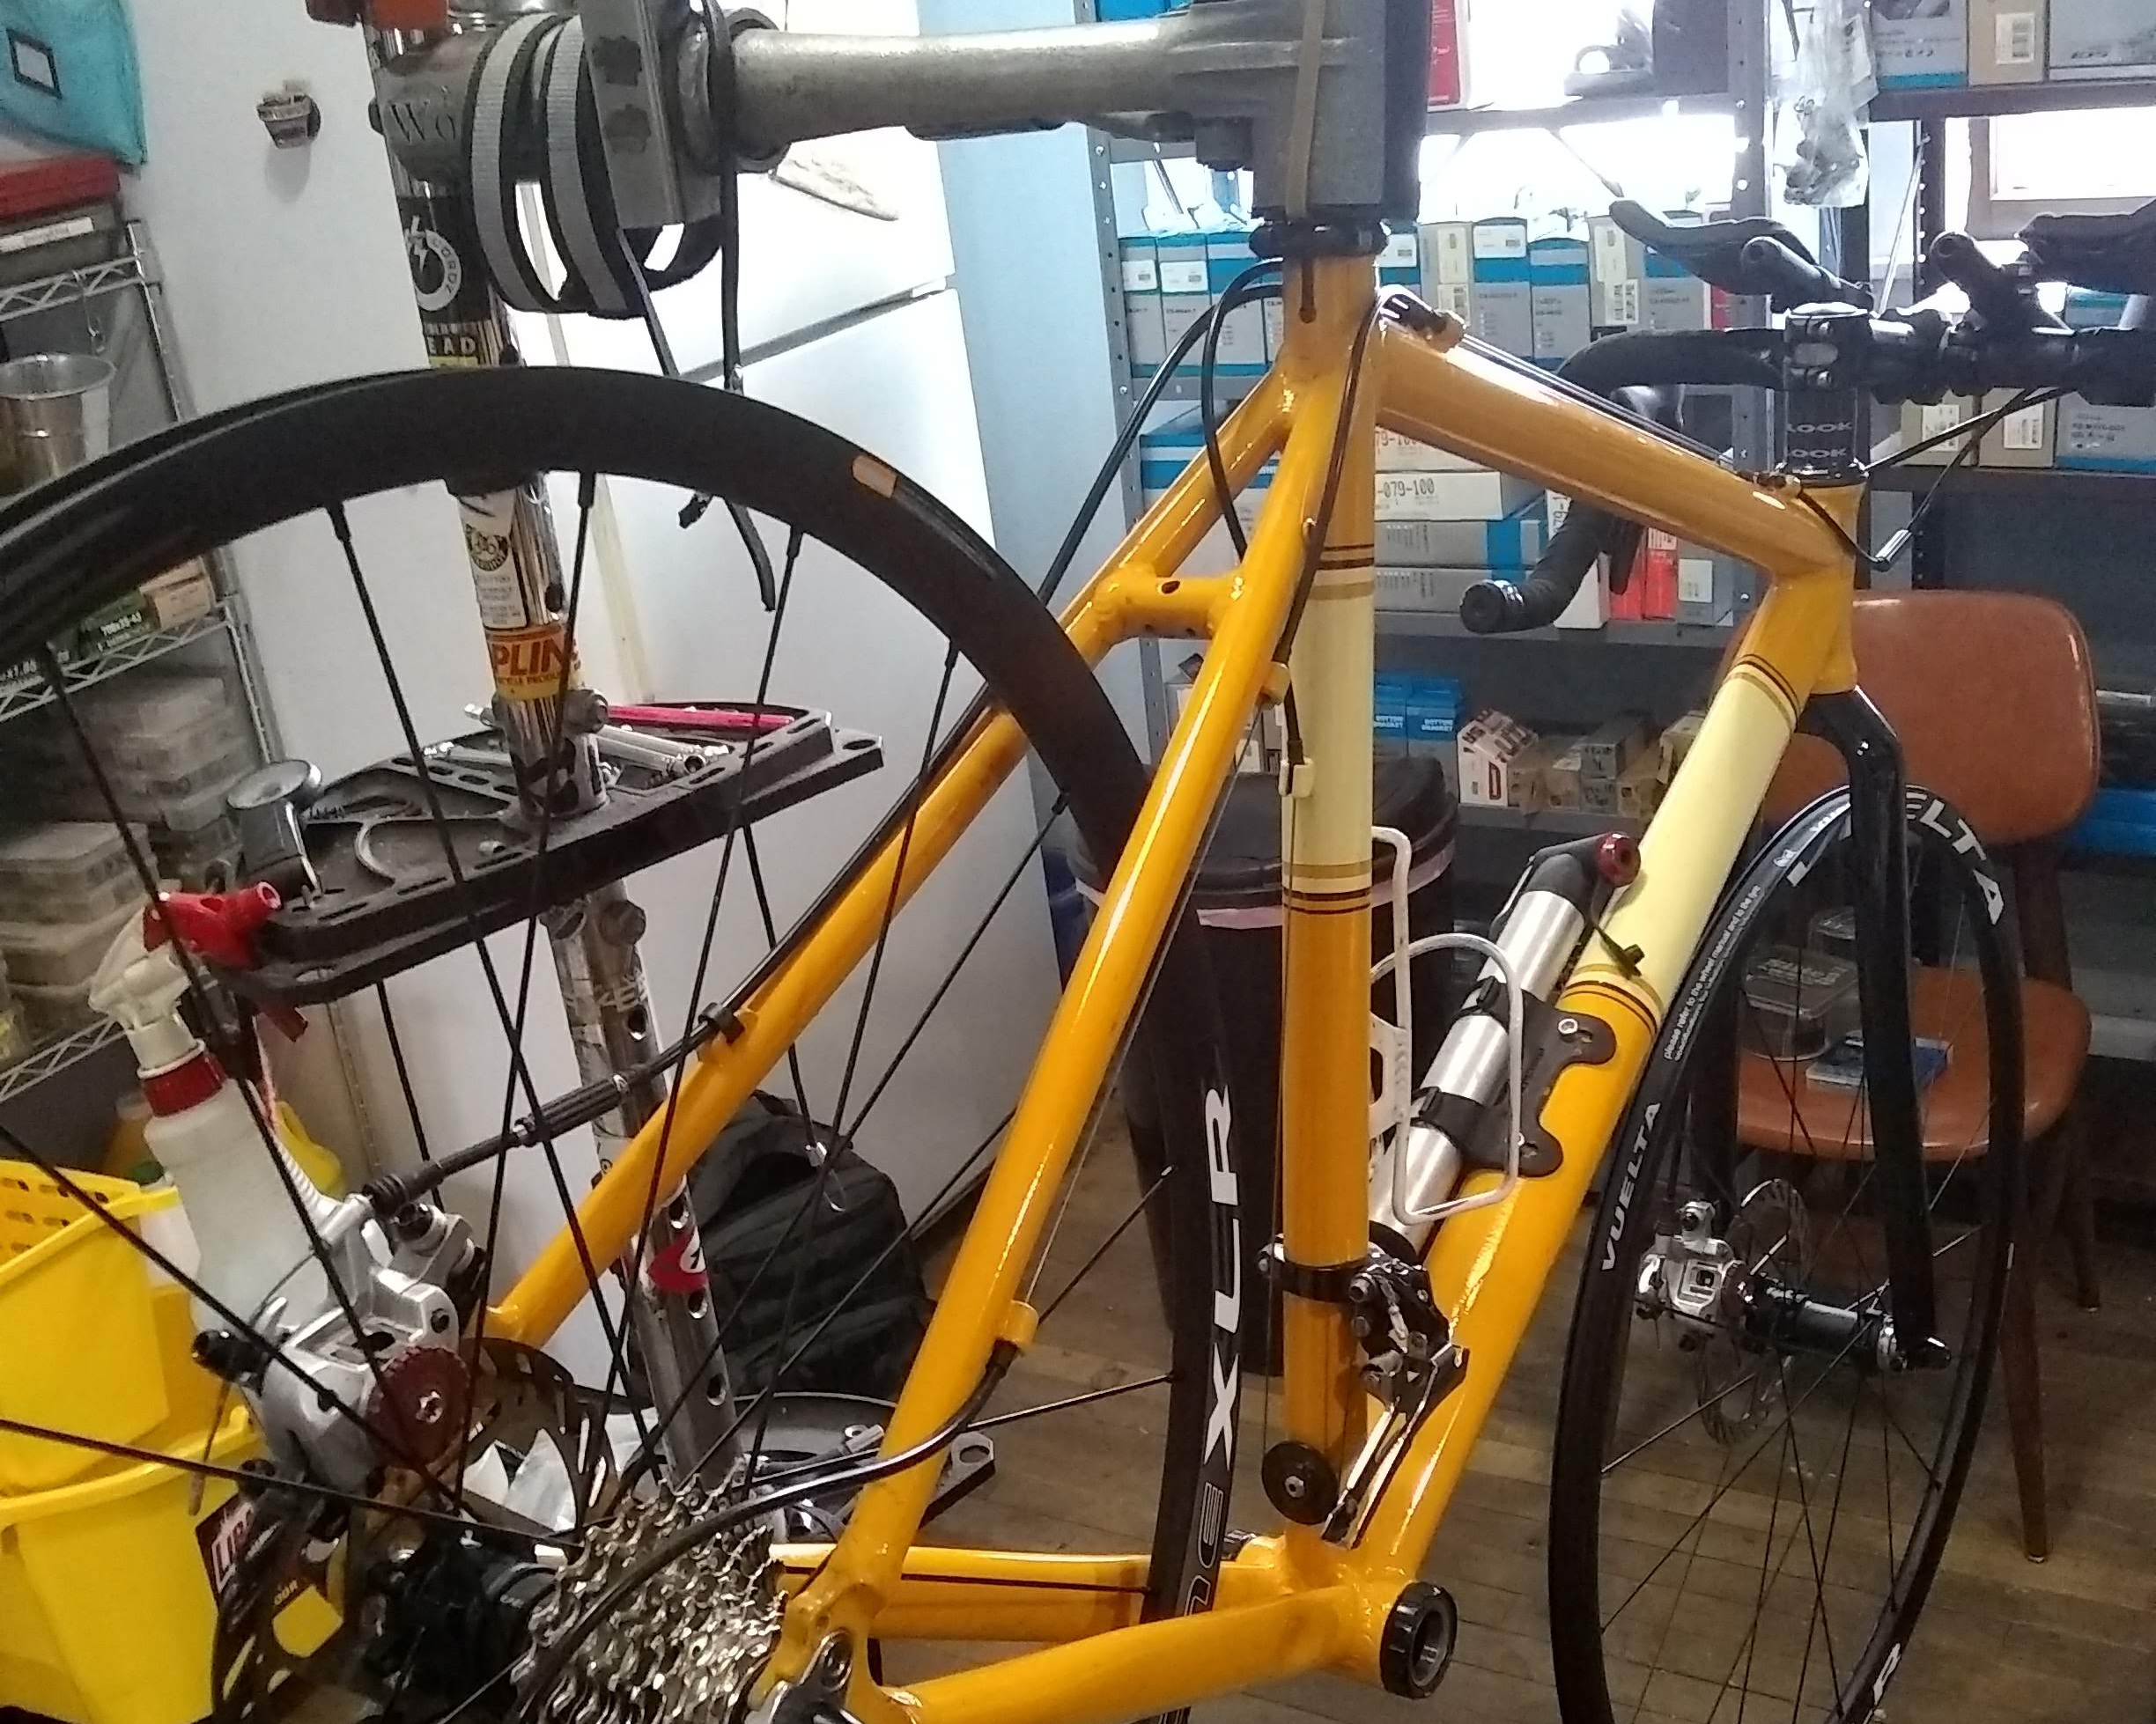 Bike repair - Have your bike repaired by a certified professional. You can get a free online estimate just by filling out this form.